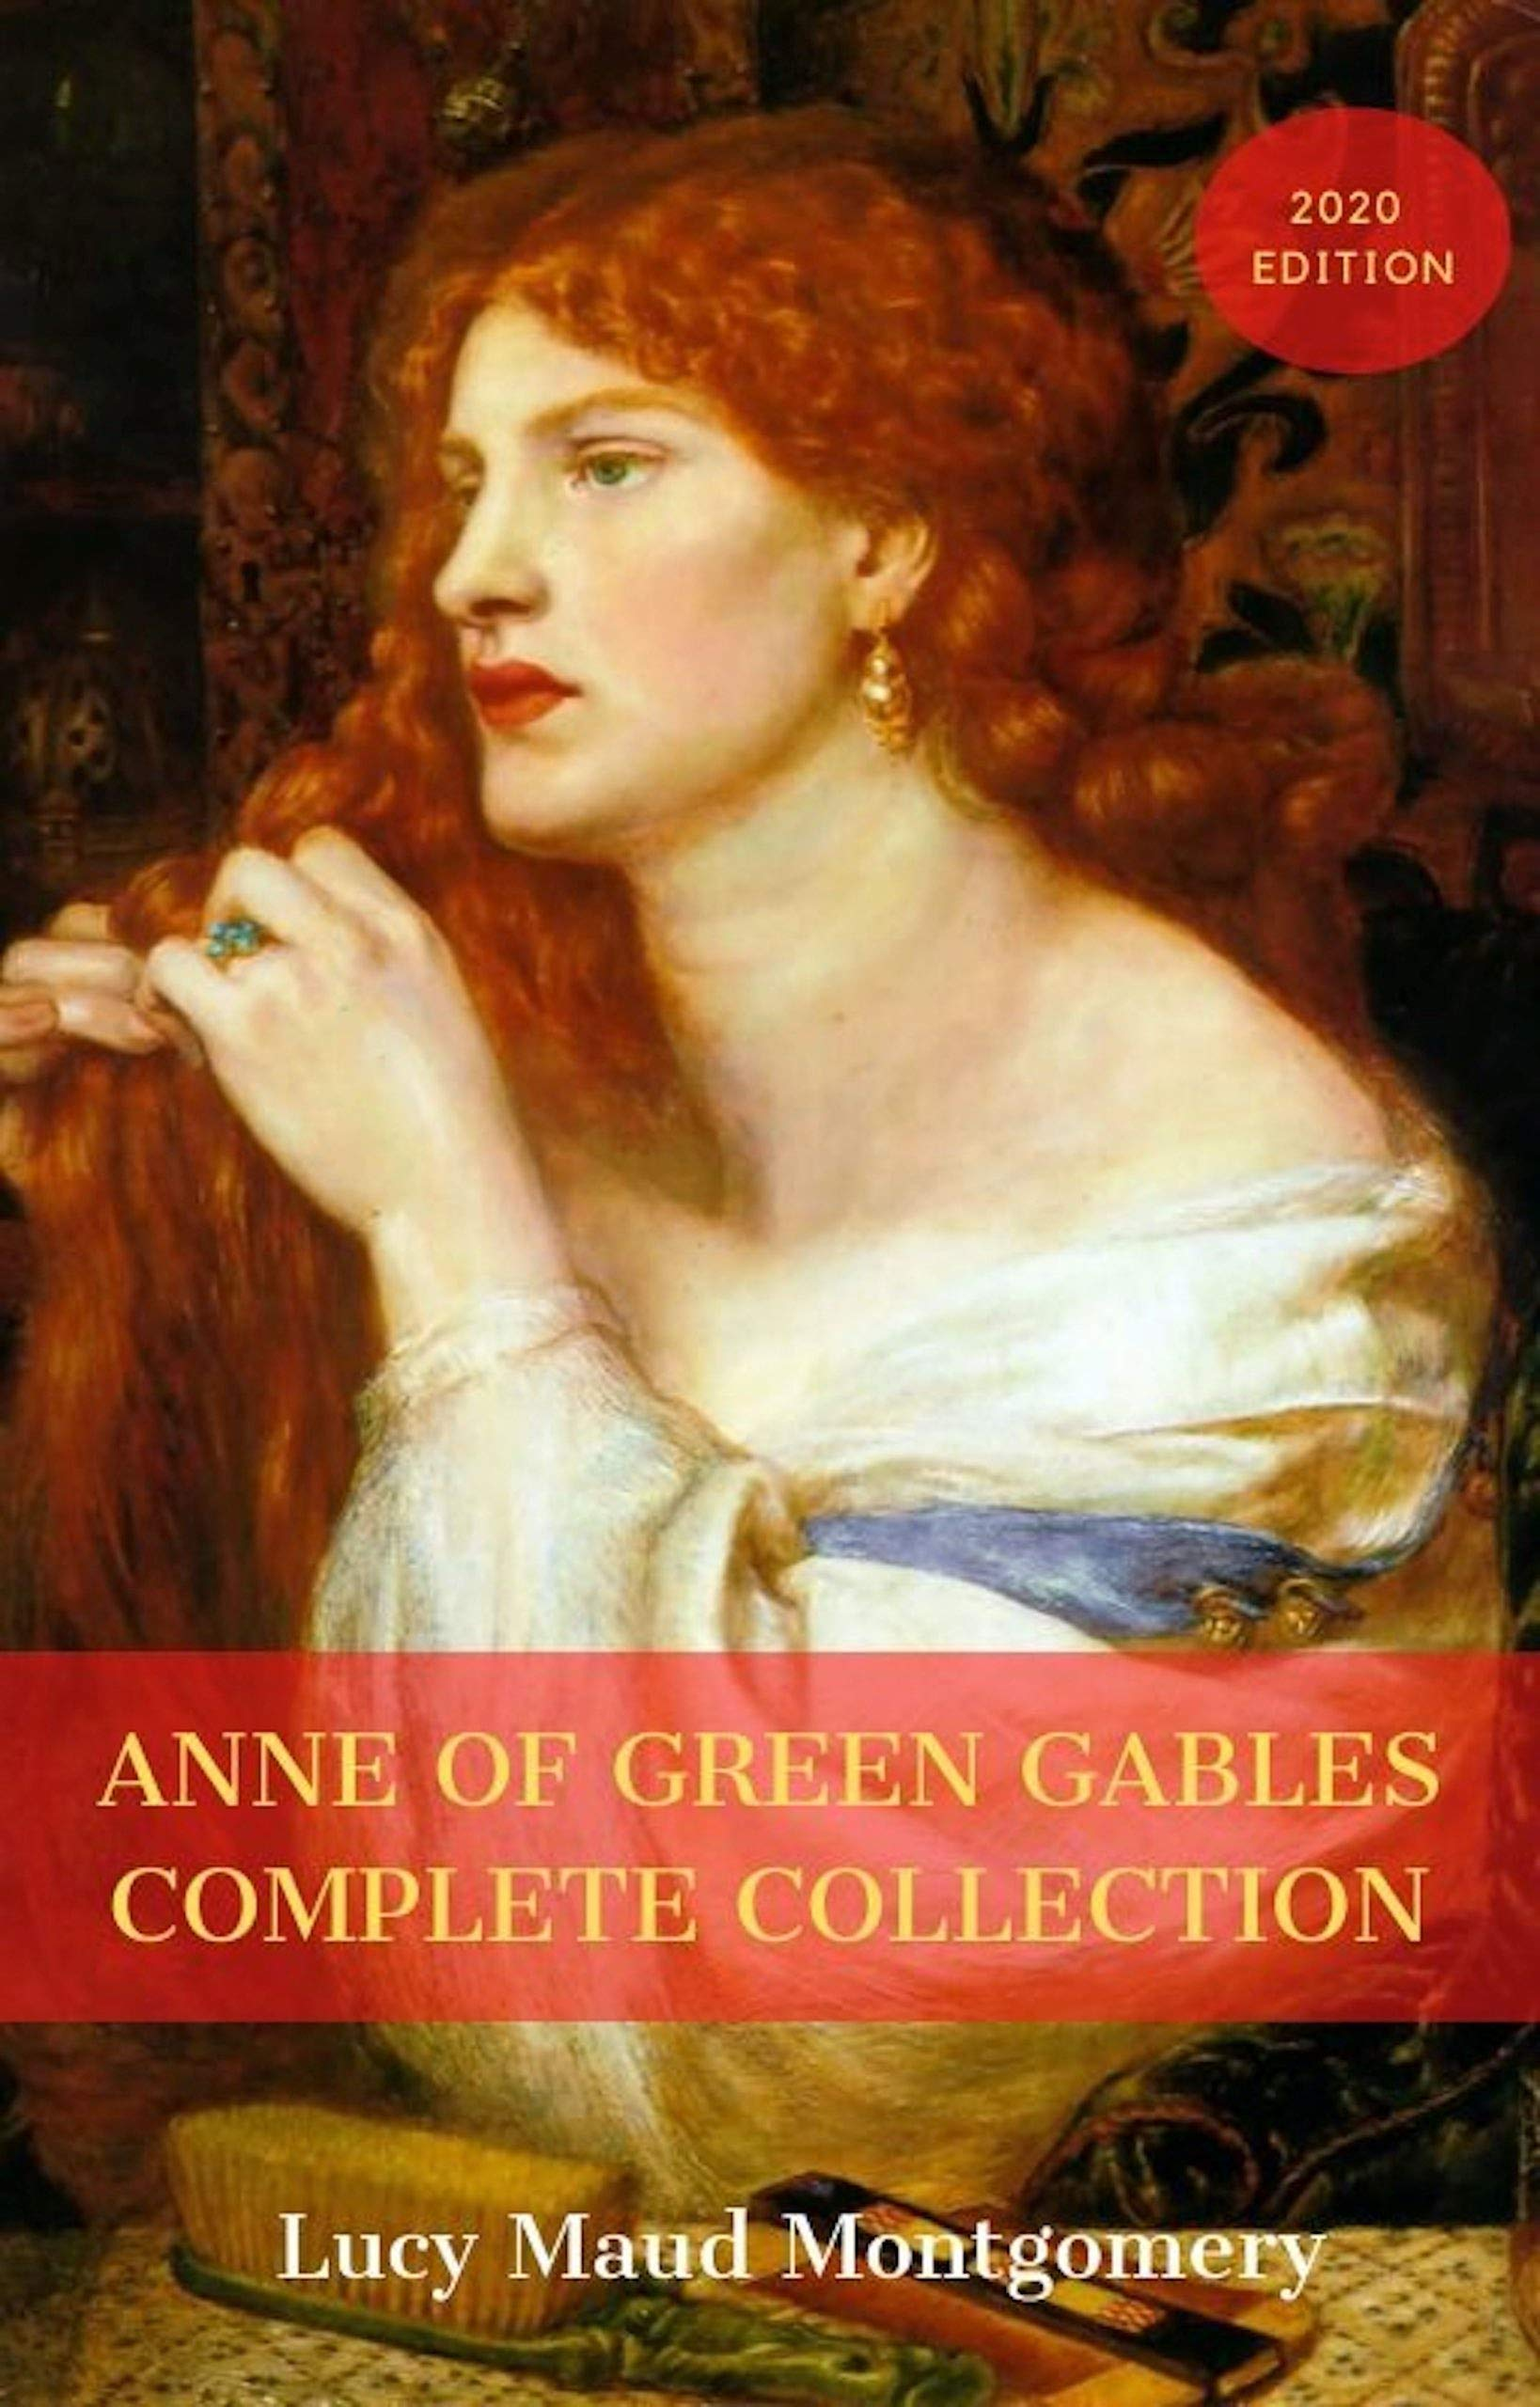 Anne of Green Gables Complete Collection